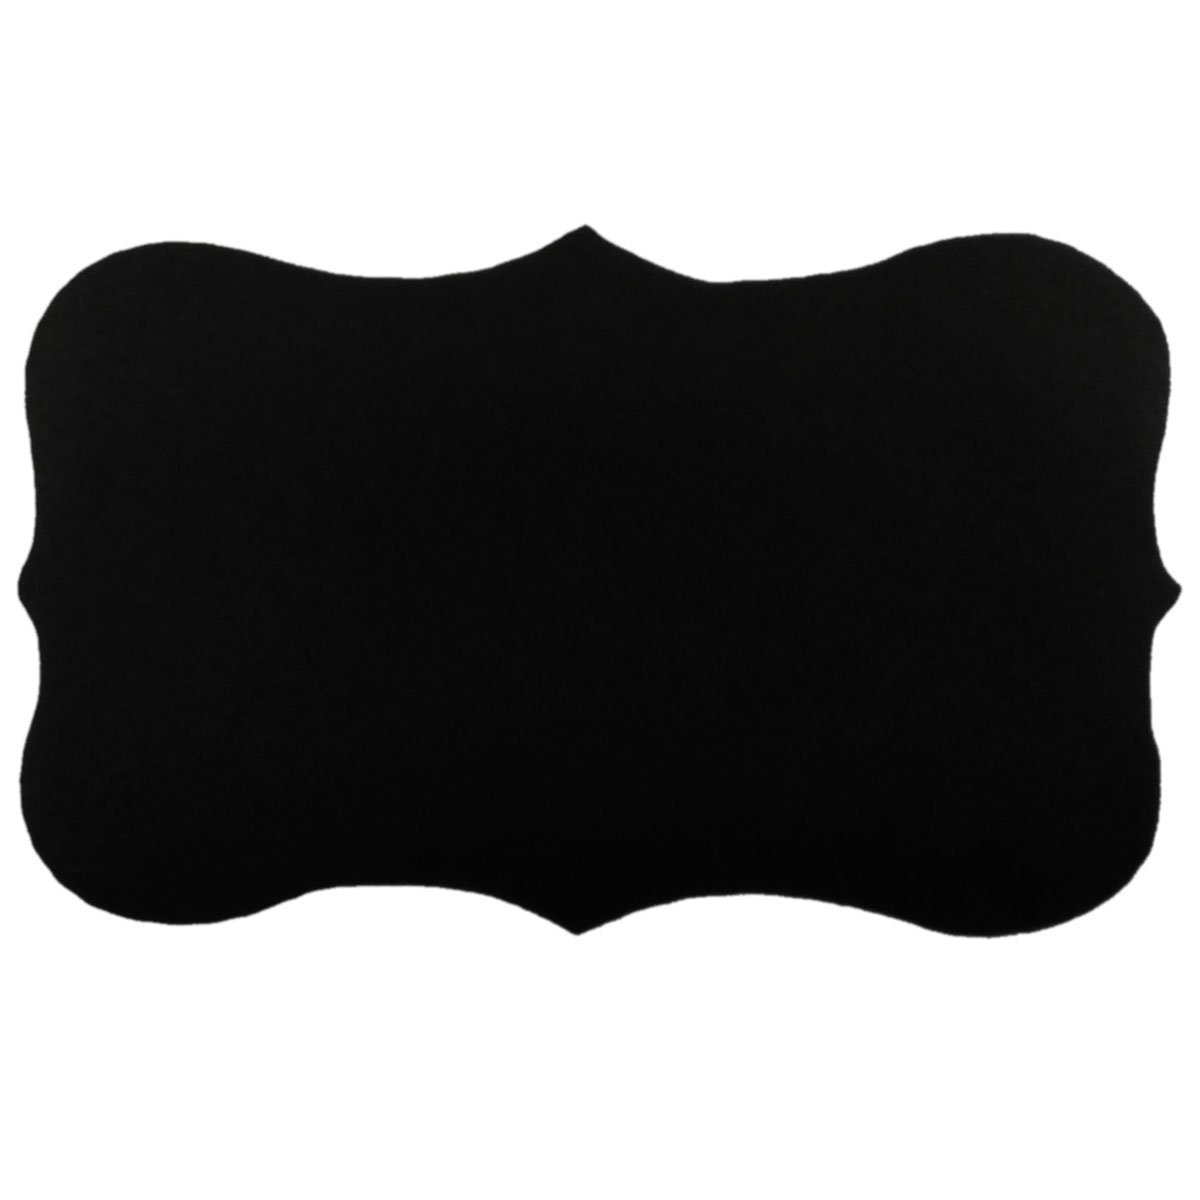 Free Chalkboard Cliparts Shape, Download Free Clip Art, Free.